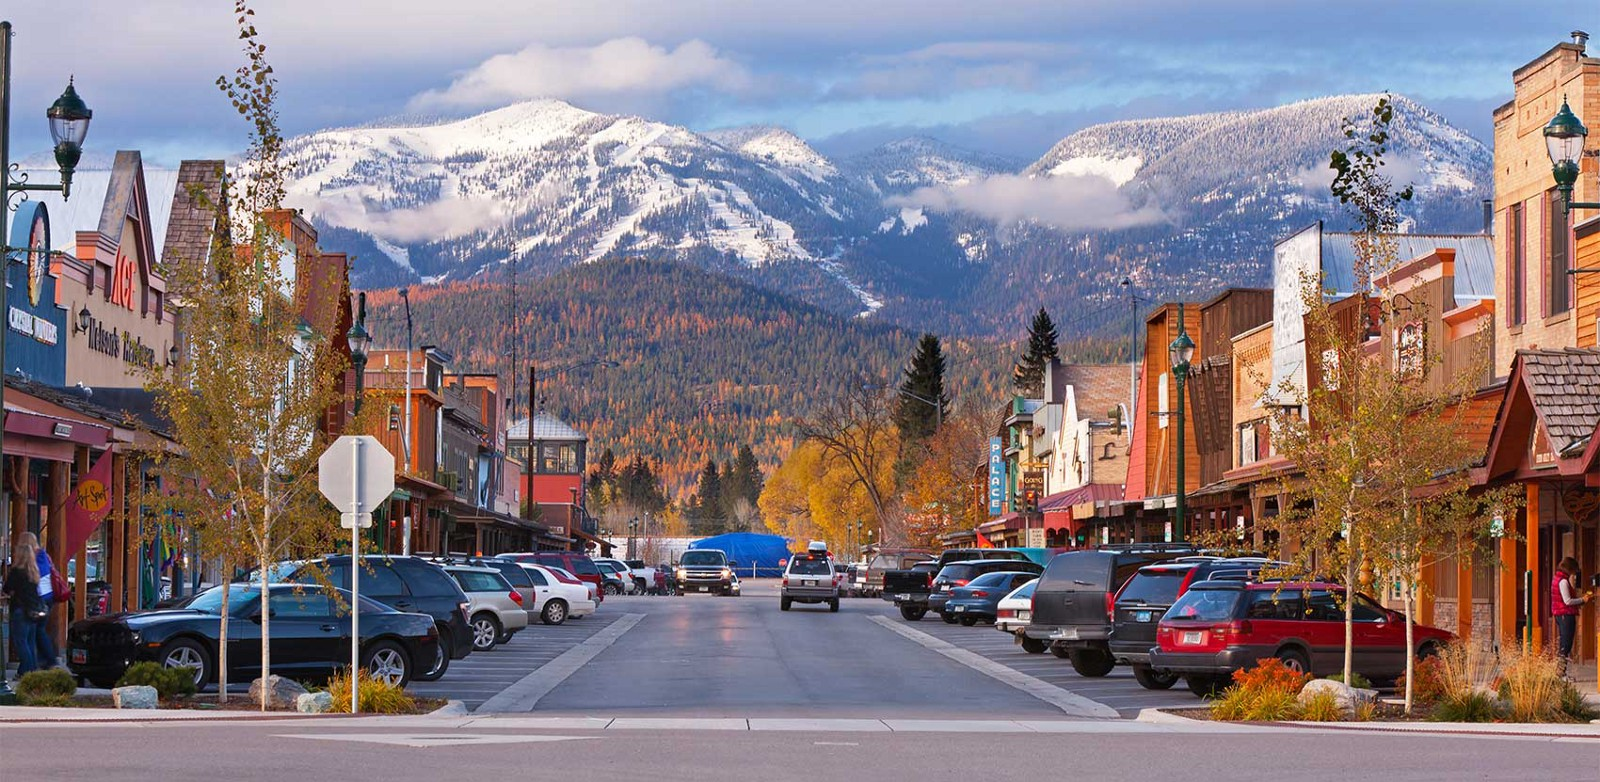 whitefish montana main street in the fall